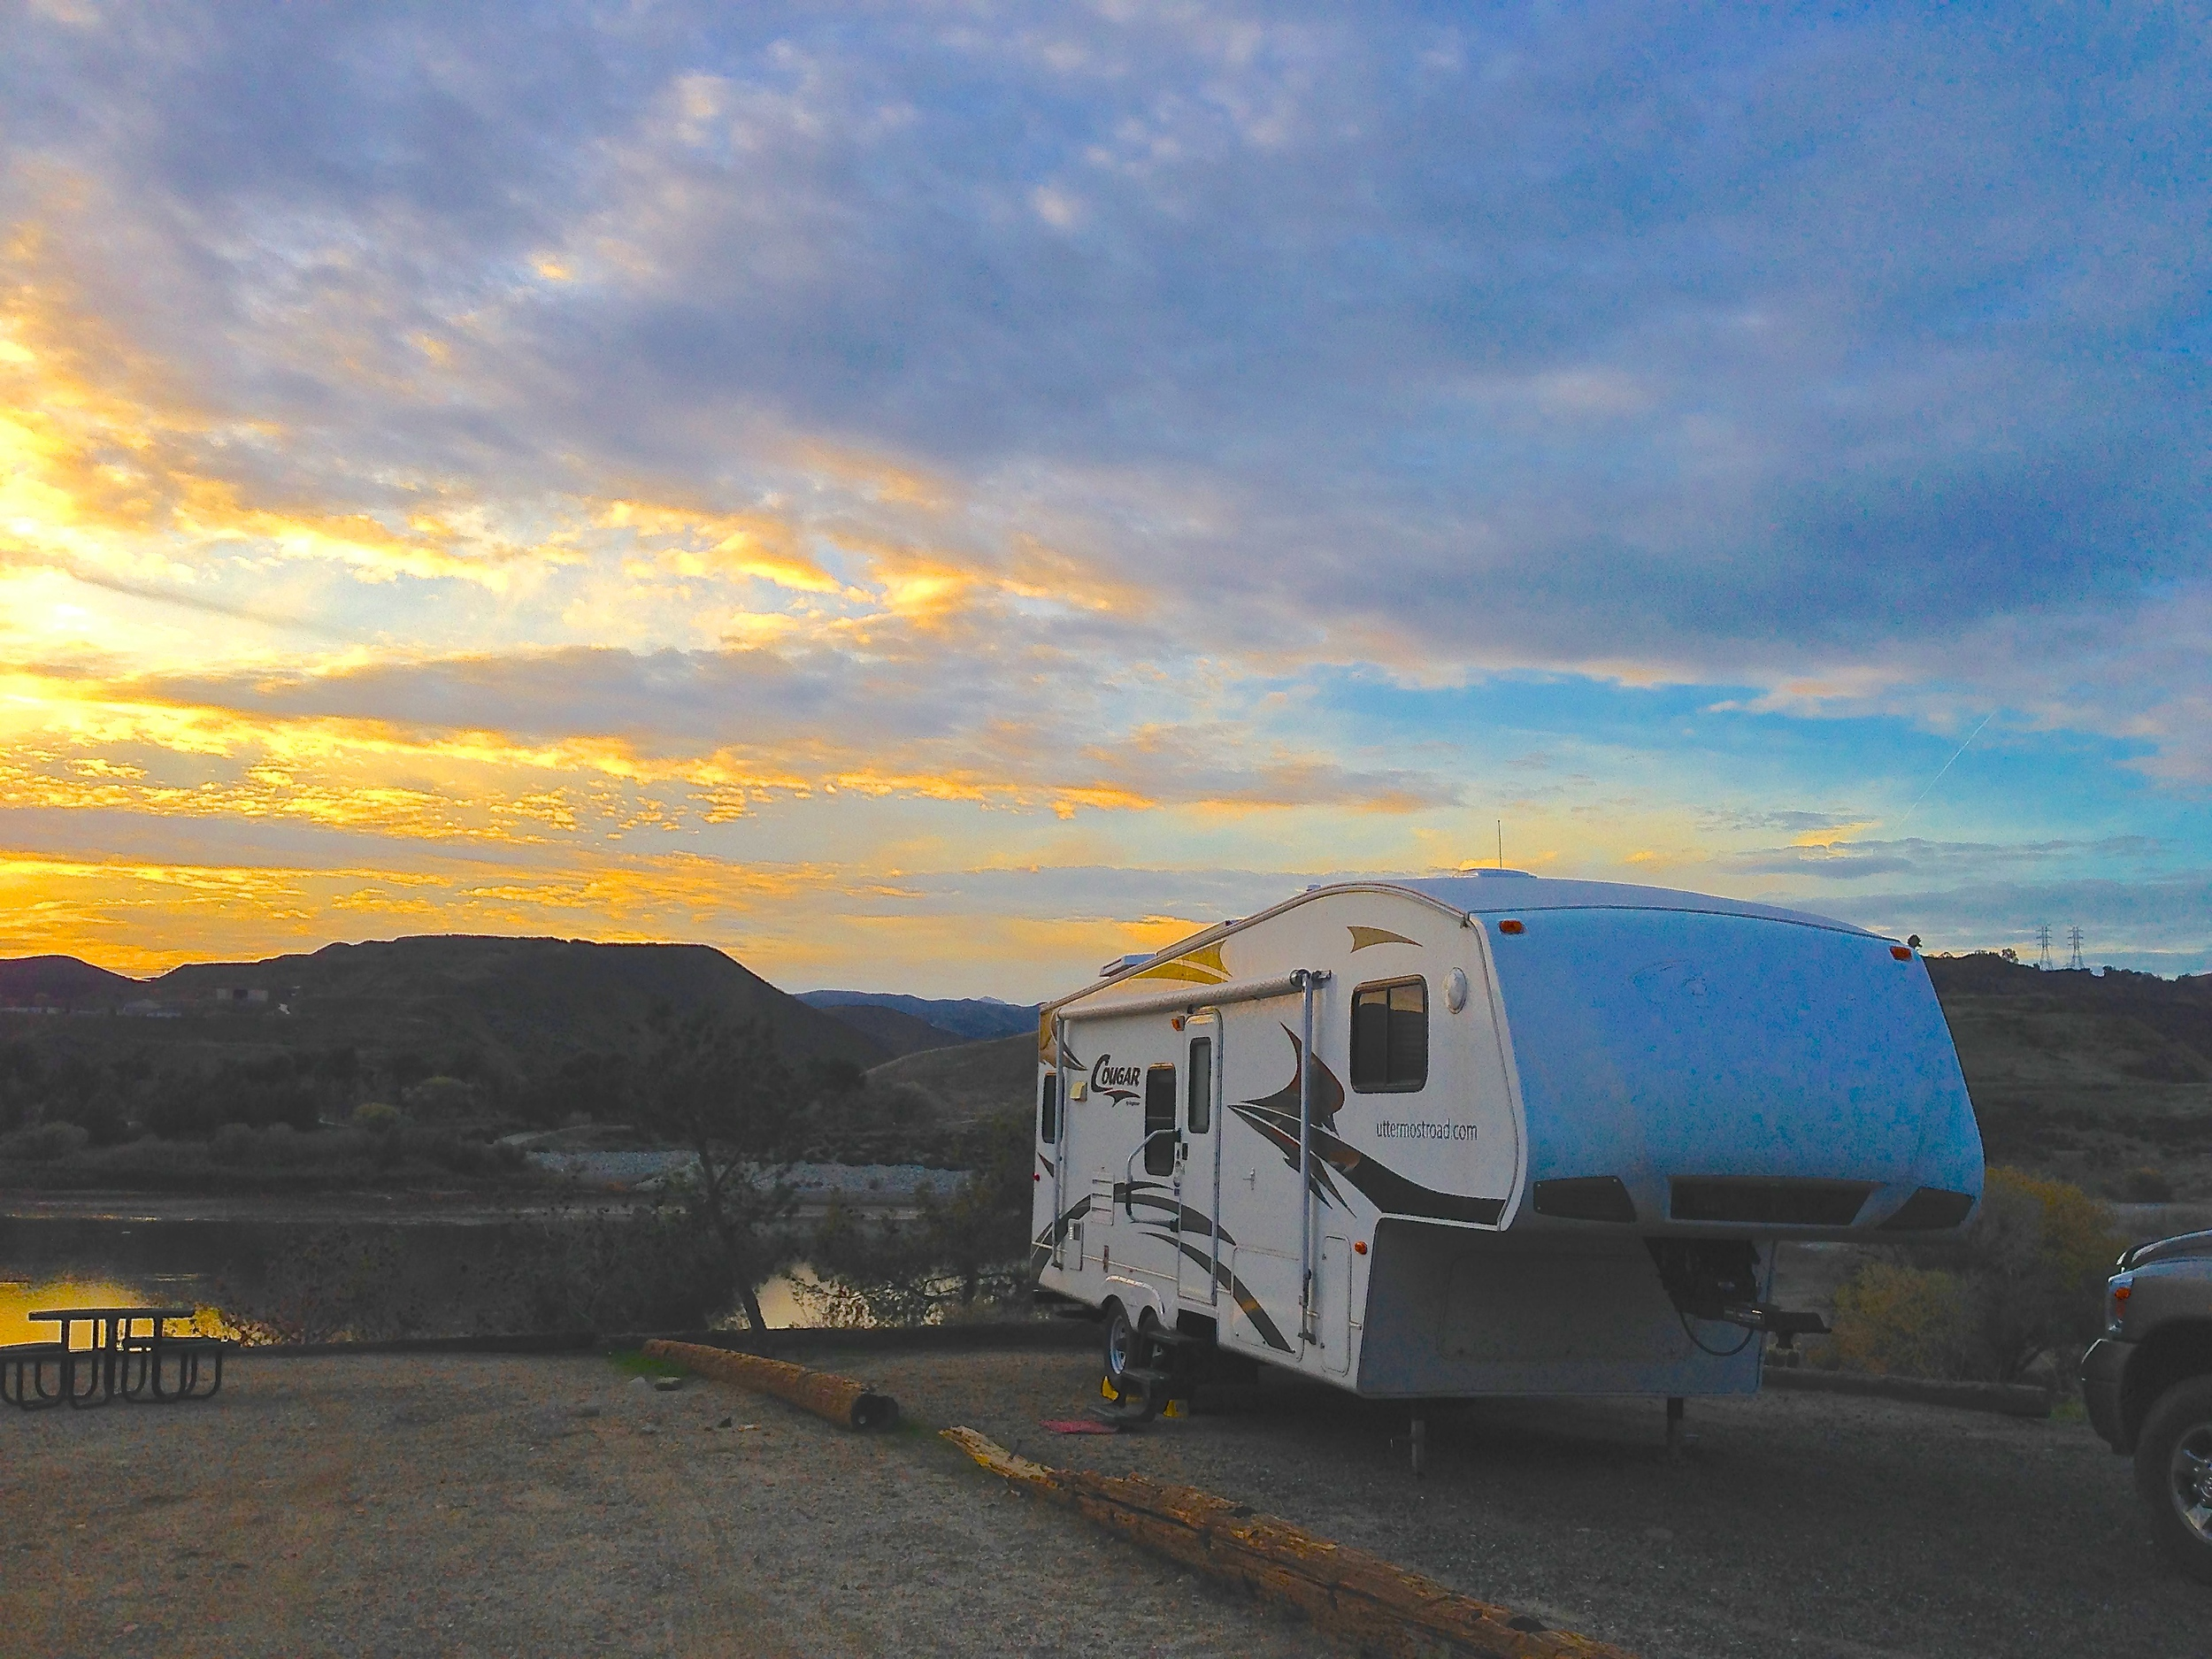 Castaic Lake, California (December 19-20)